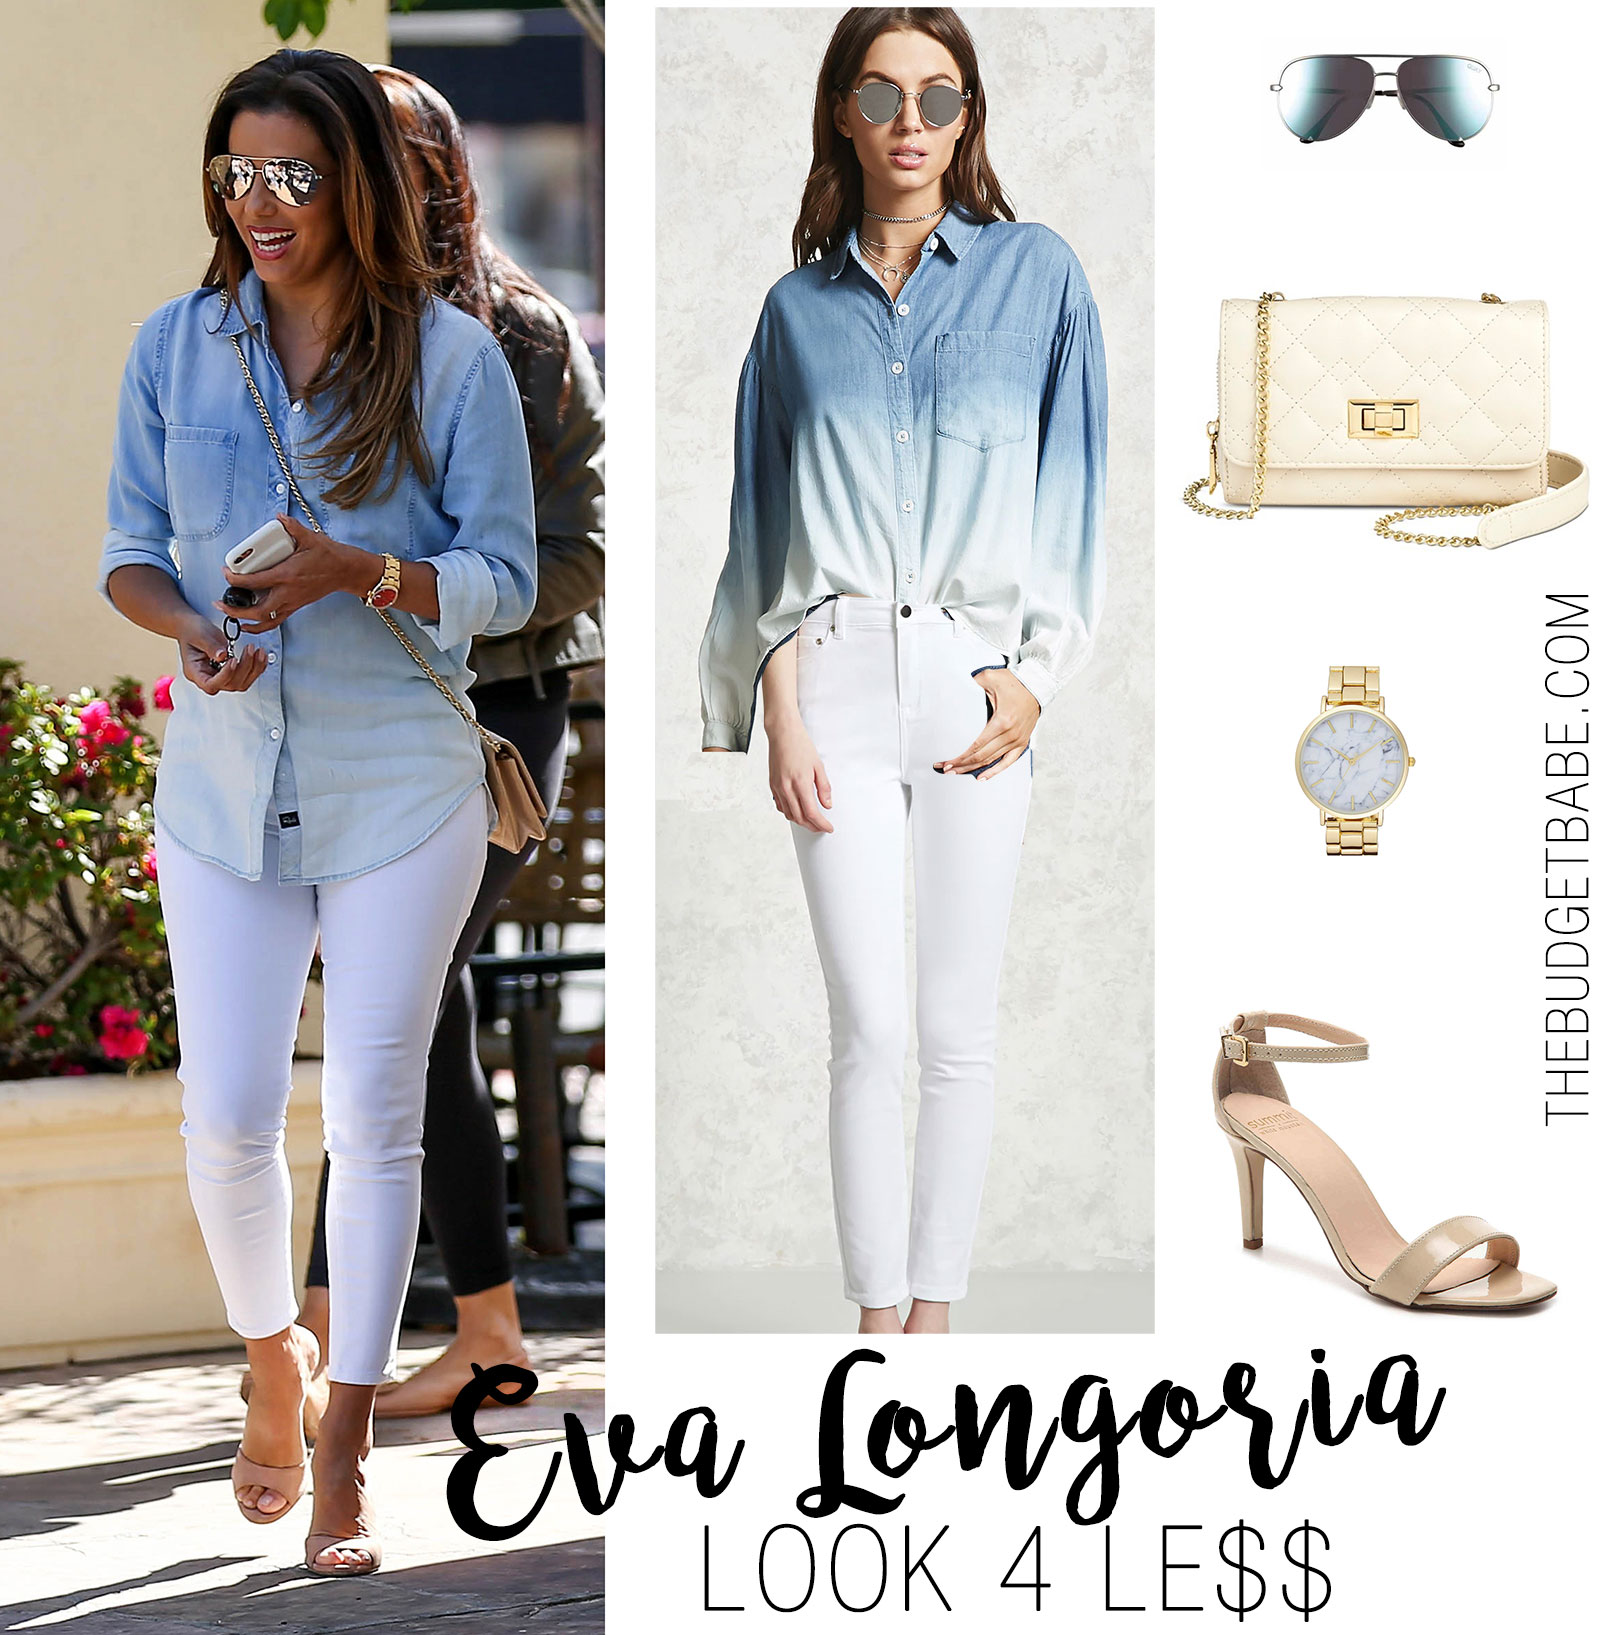 Eva Longoria is all smiles in her ombre denim shirt, white skinny jeans, and nude slide heels.